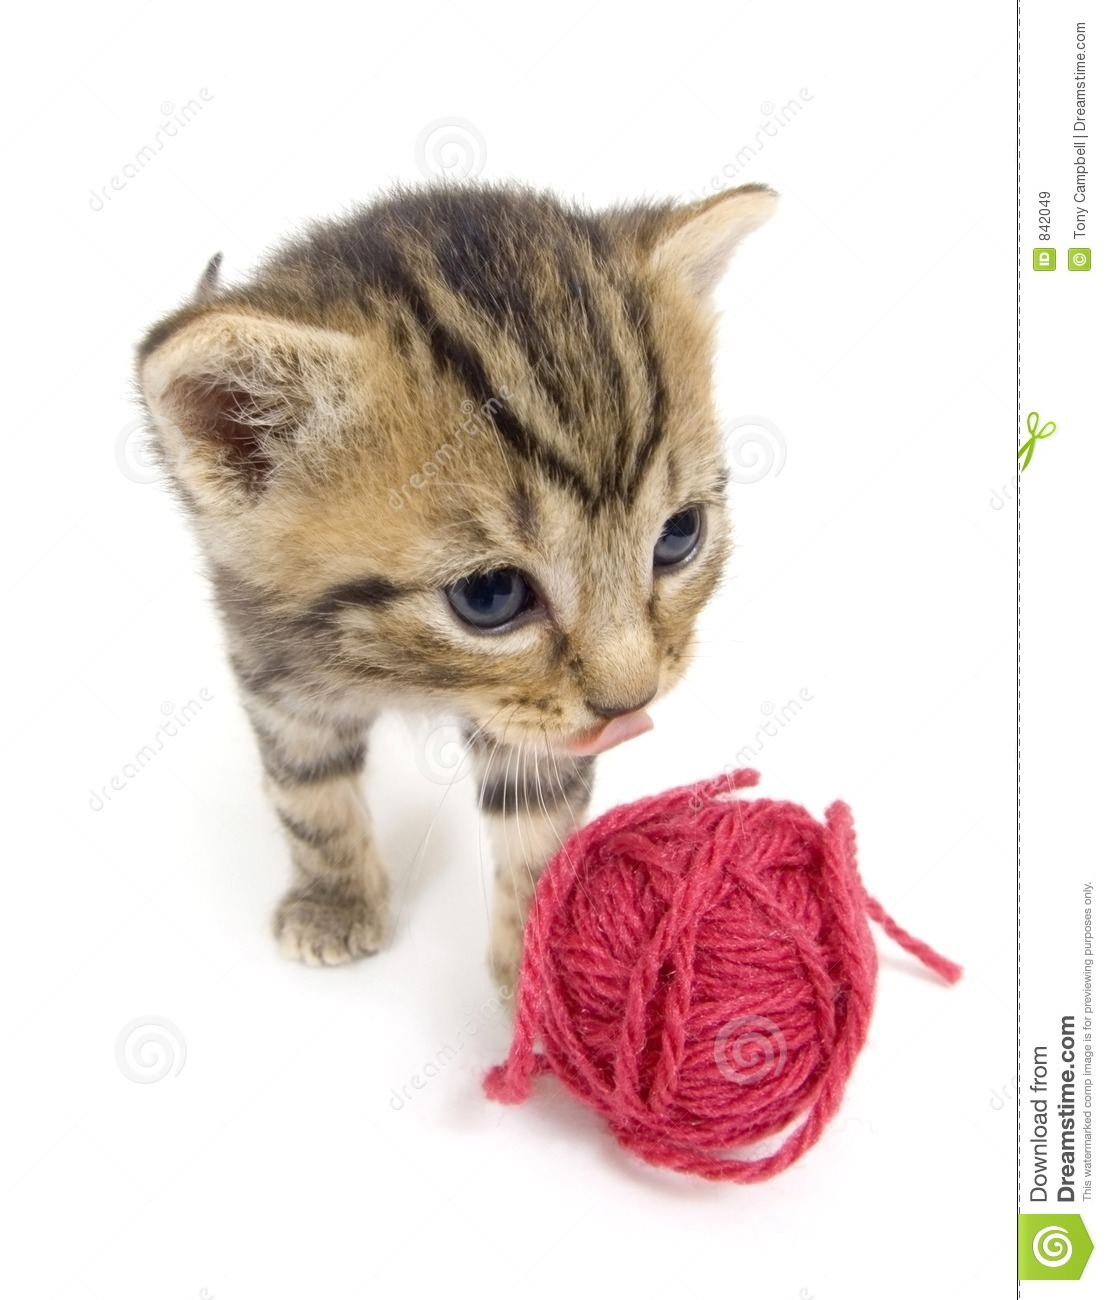 Kitten looking at red yarn on white background